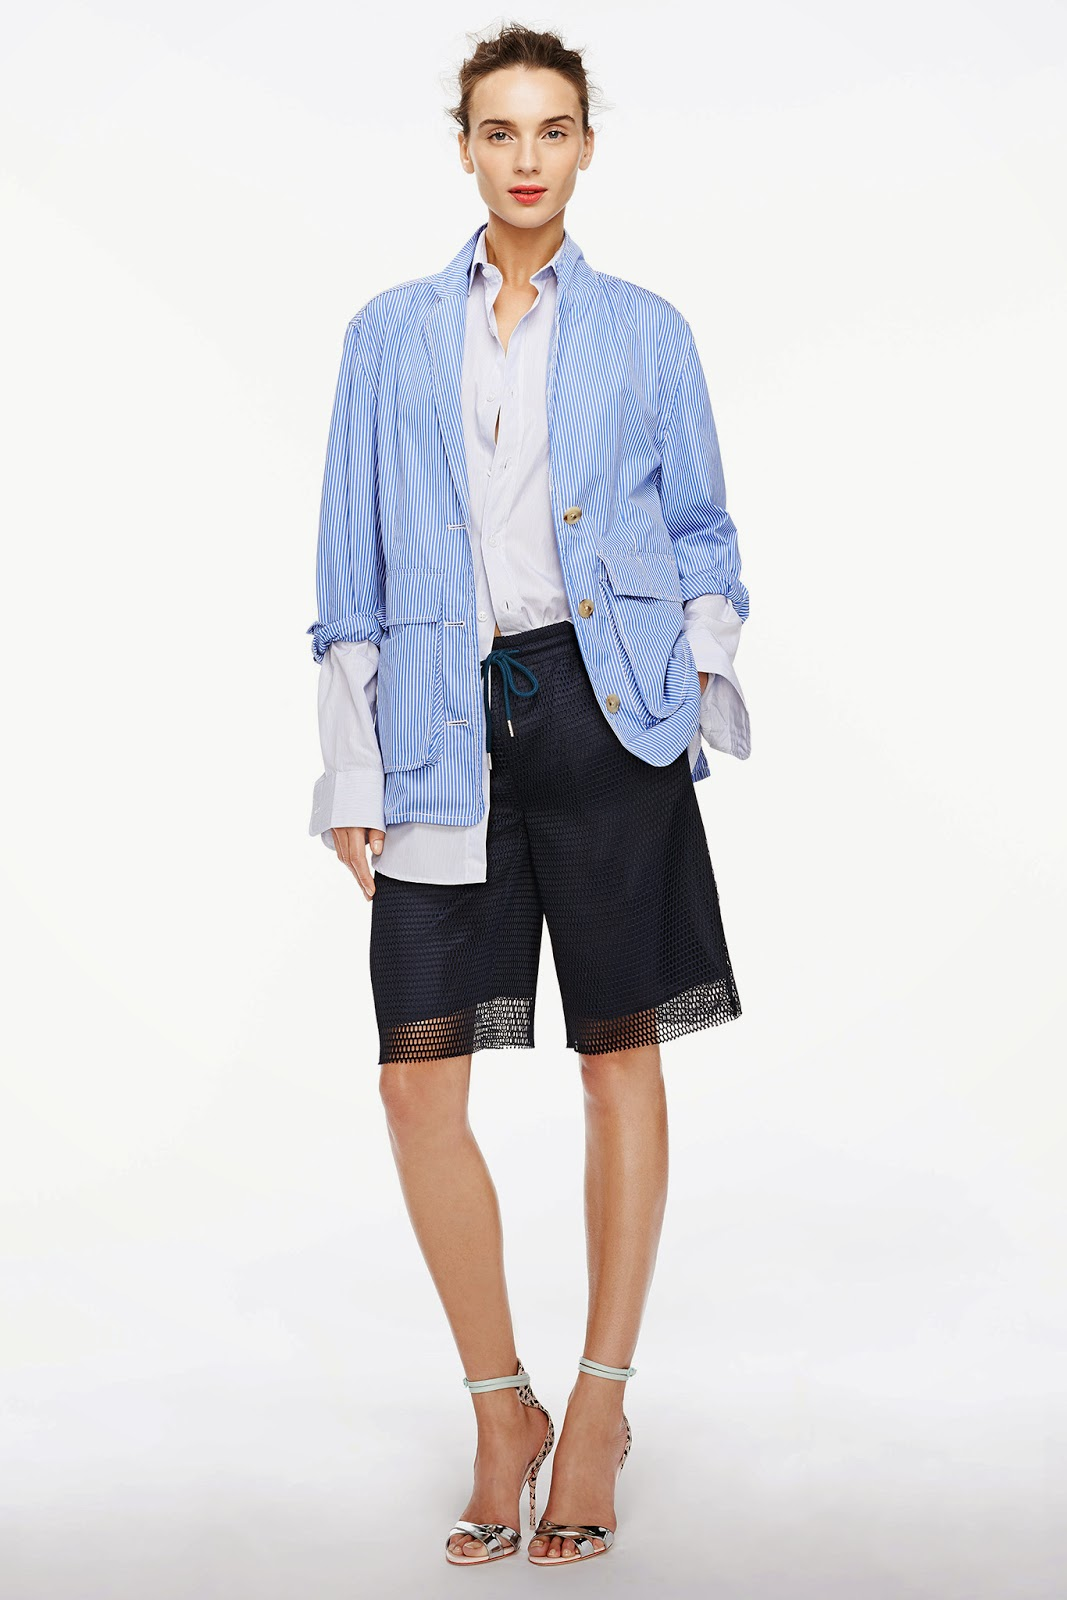 a3rfaktar.ml Women's & Men's Clothing | a3rfaktar.ml has been visited by K+ users in the past monthNordstrom No.1 Best Return Policy in – Go Banking Rates.